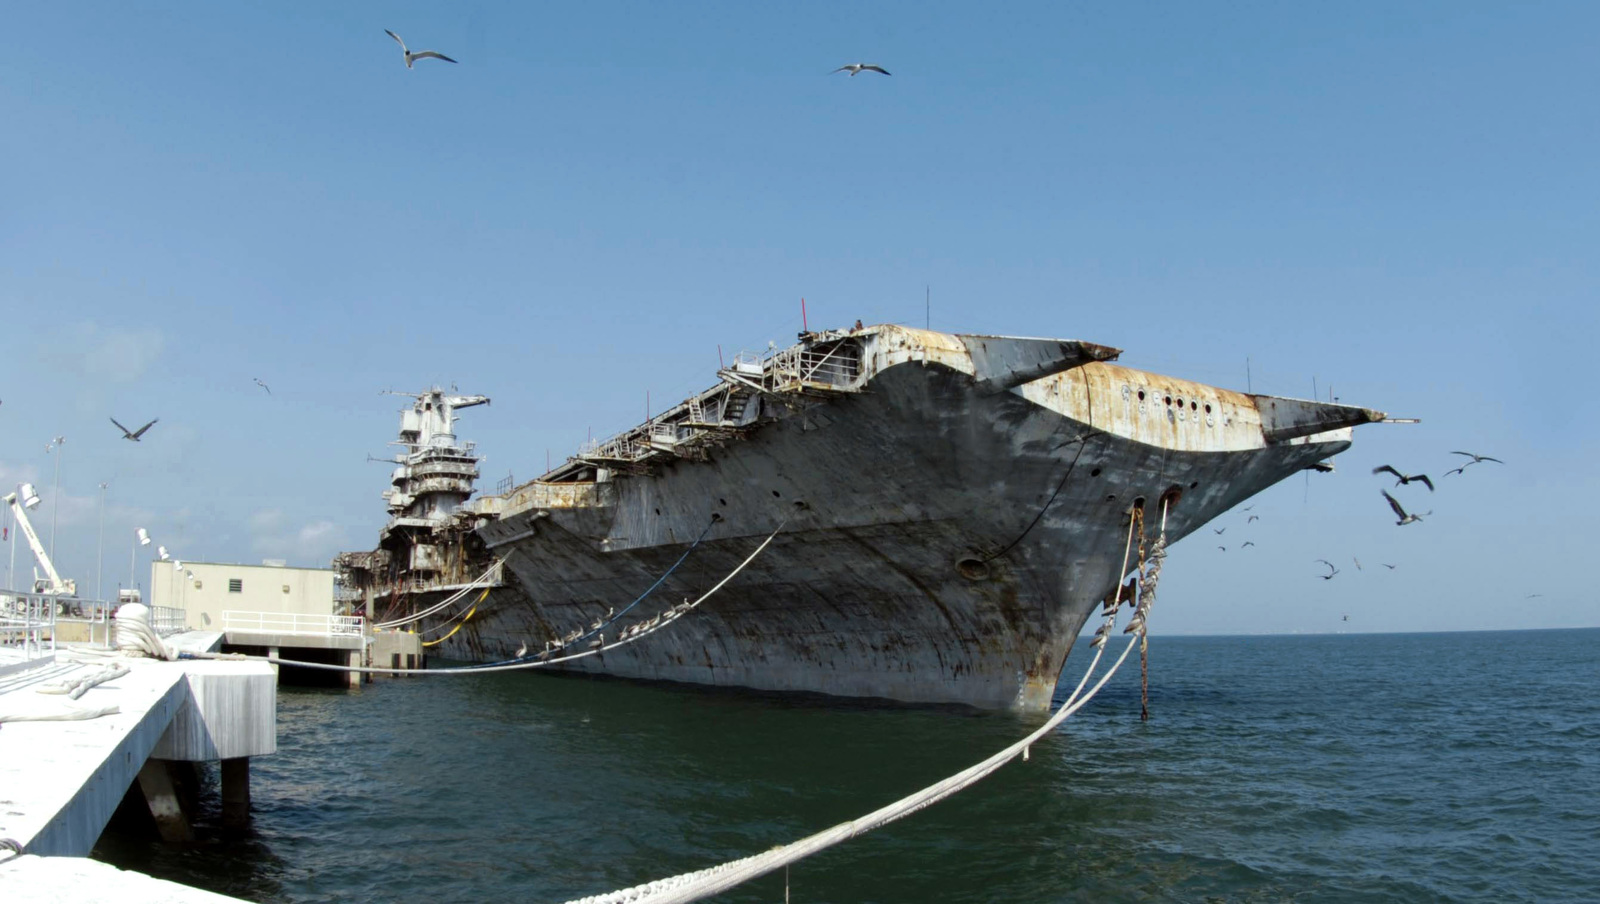 A starboard bow view of the decommissioned USN Intrepid